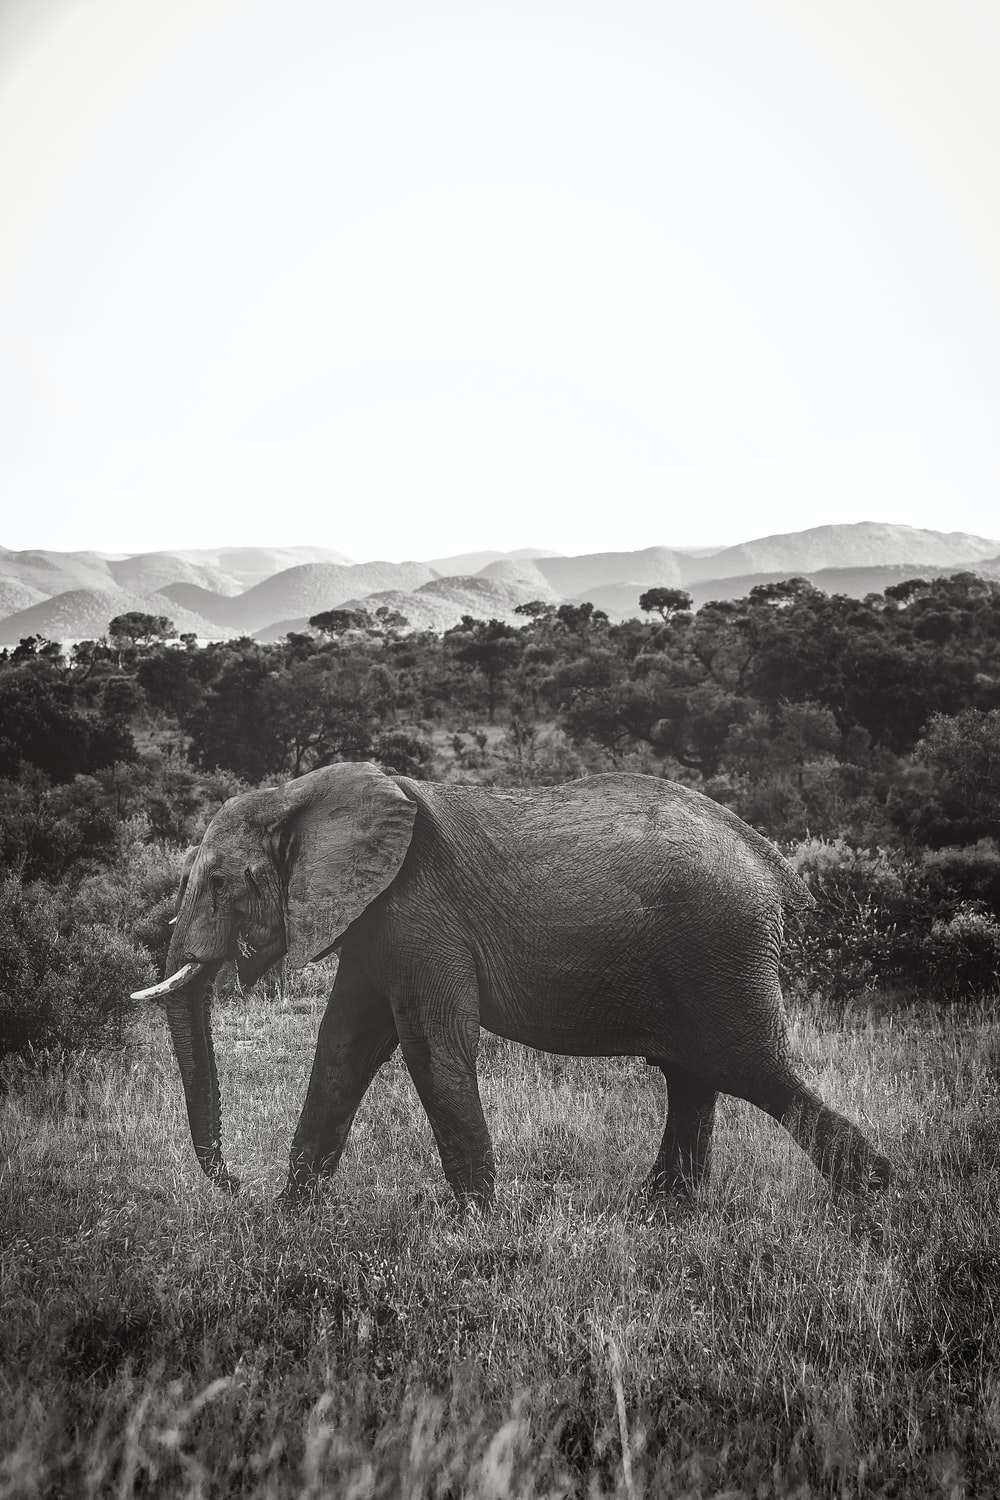 grayscale photo of gray elephant near trees